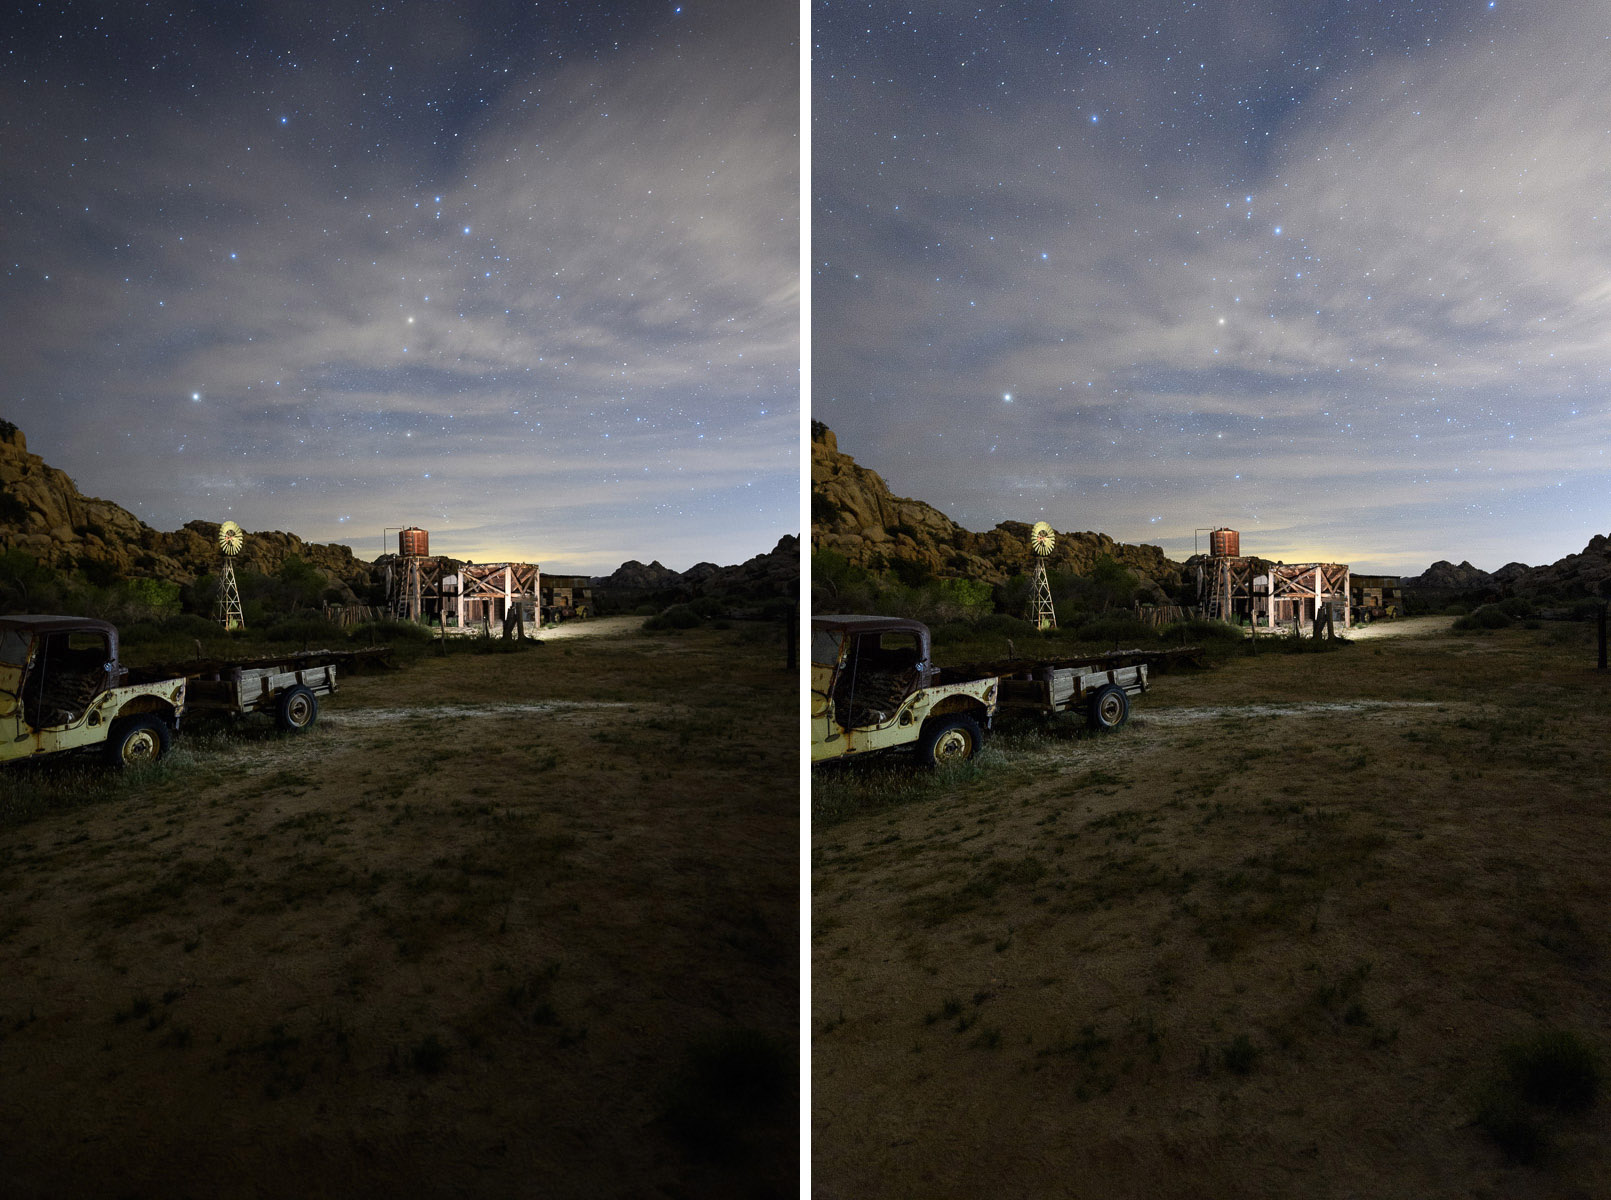 Figure 6. Before applying lens profile corrections (left) and after (right).